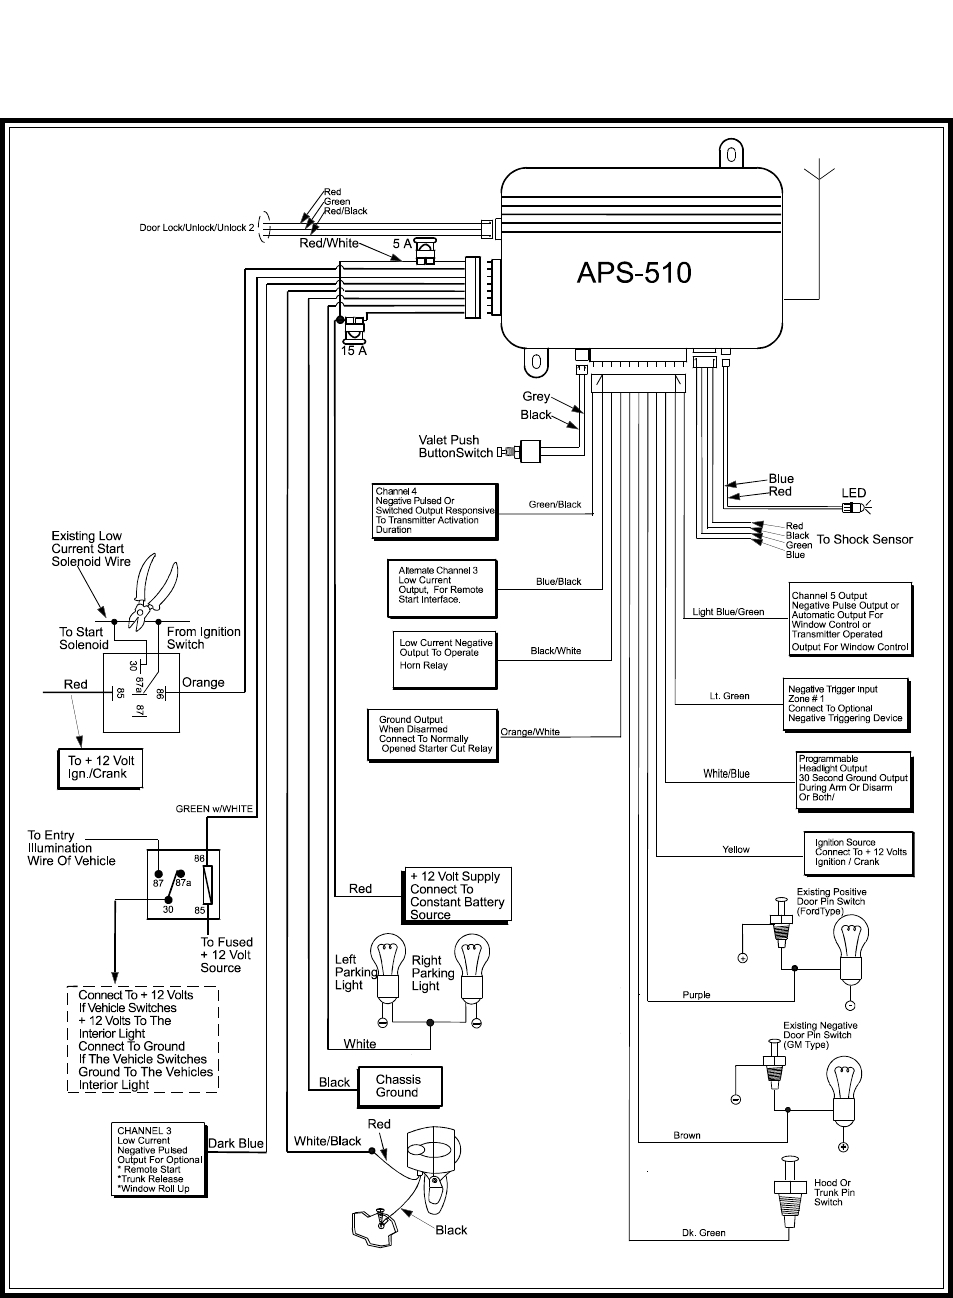 viper car alarm system diagram wiring diagram for you • toad a101cl car alarm wiring diagram experience of wiring diagram u2022 rh aglentedeaumento com br viper alarm system wiring diagram car alarm installation